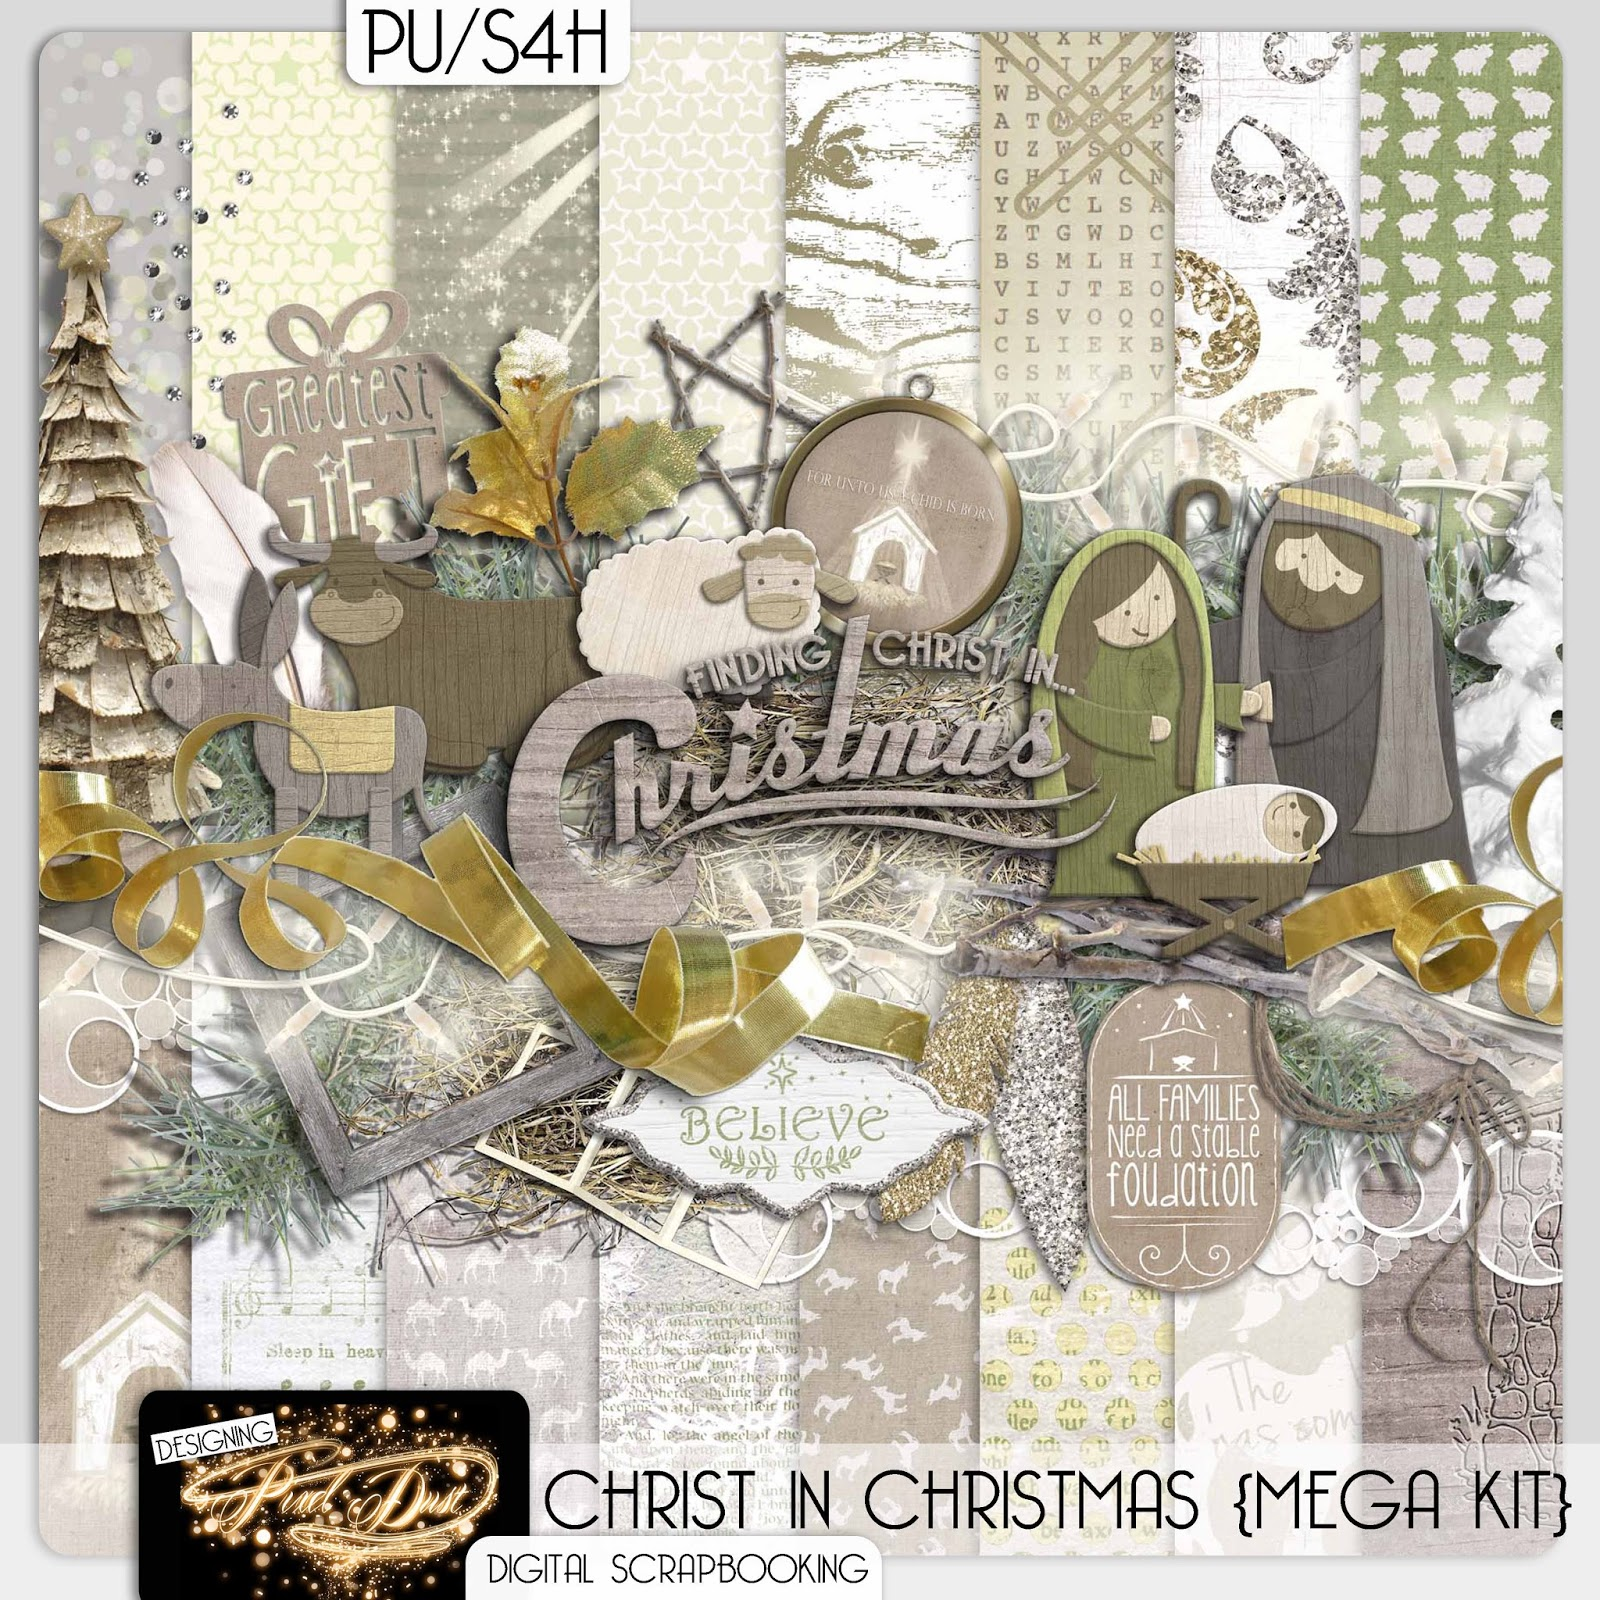 Digital scrapbooking kits free all about scrapbooking ideas - Christ In Christmas Digital Scrapbooking Kit Free Mini Kit Download